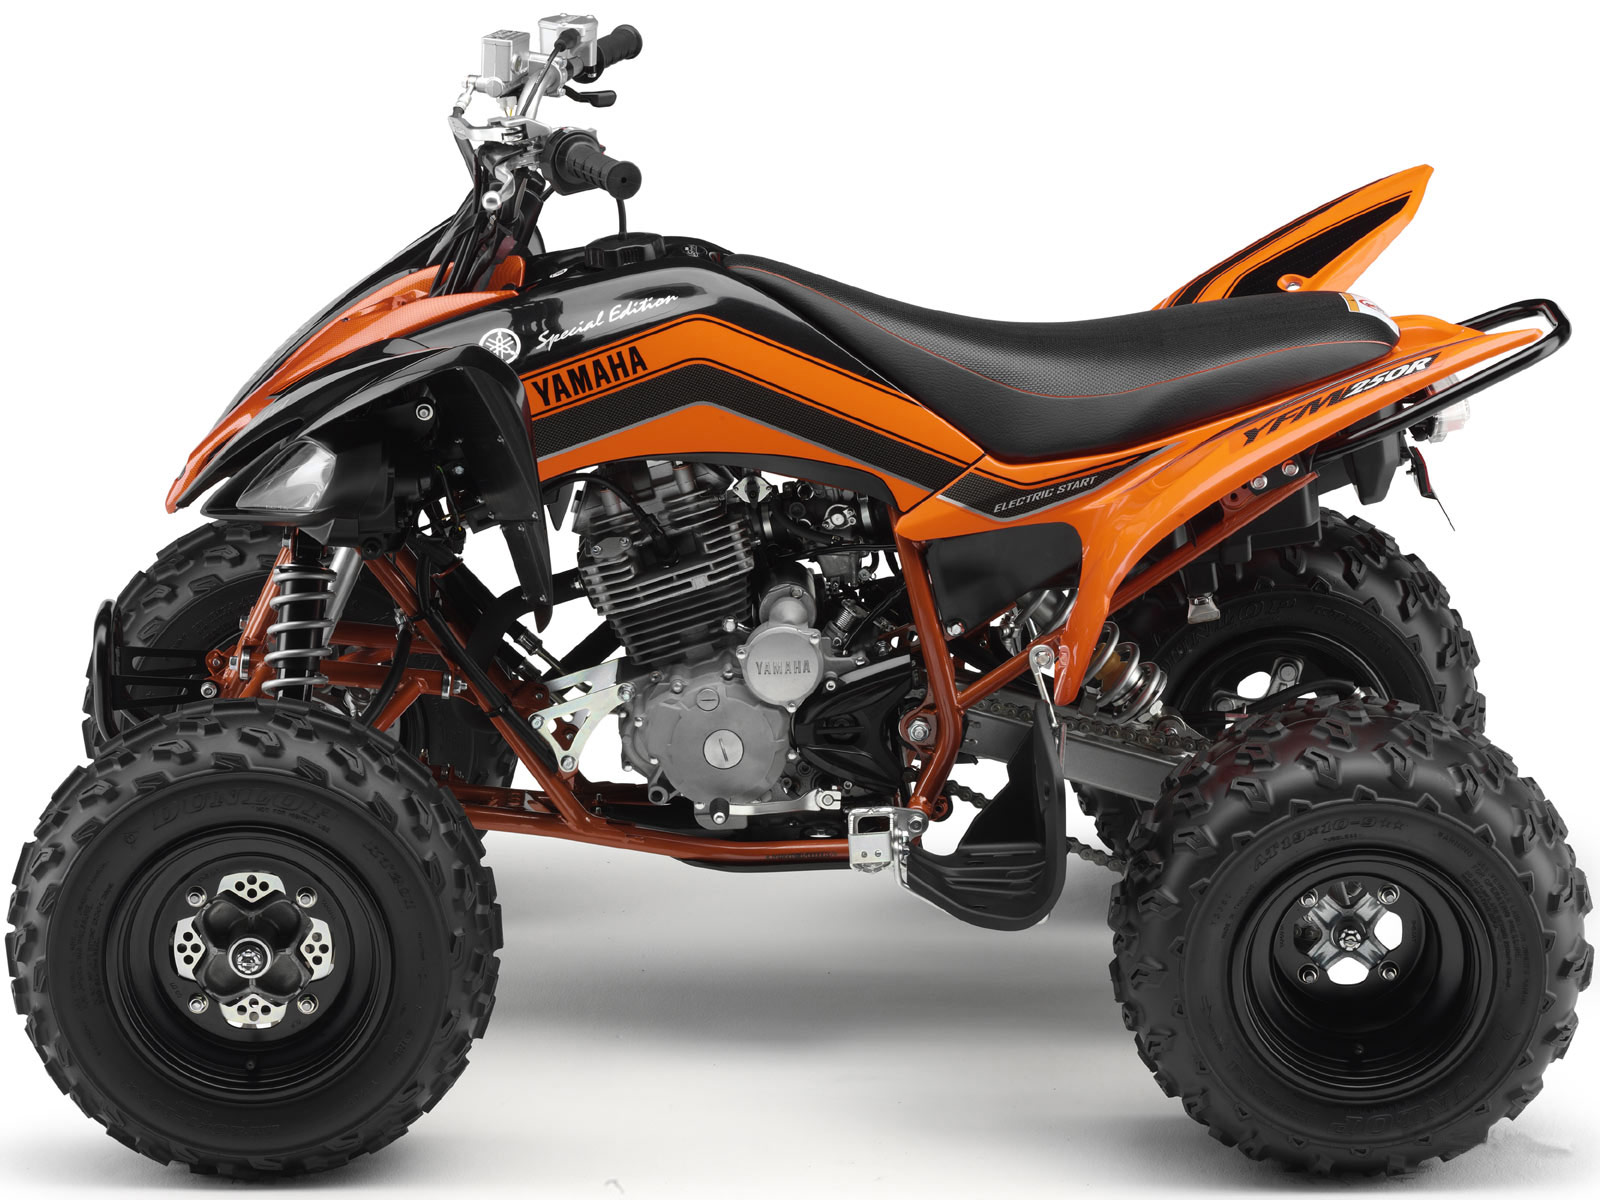 2008 yamaha yfm 250 raptor atv pictures specifications for Yamaha raptor 250 price